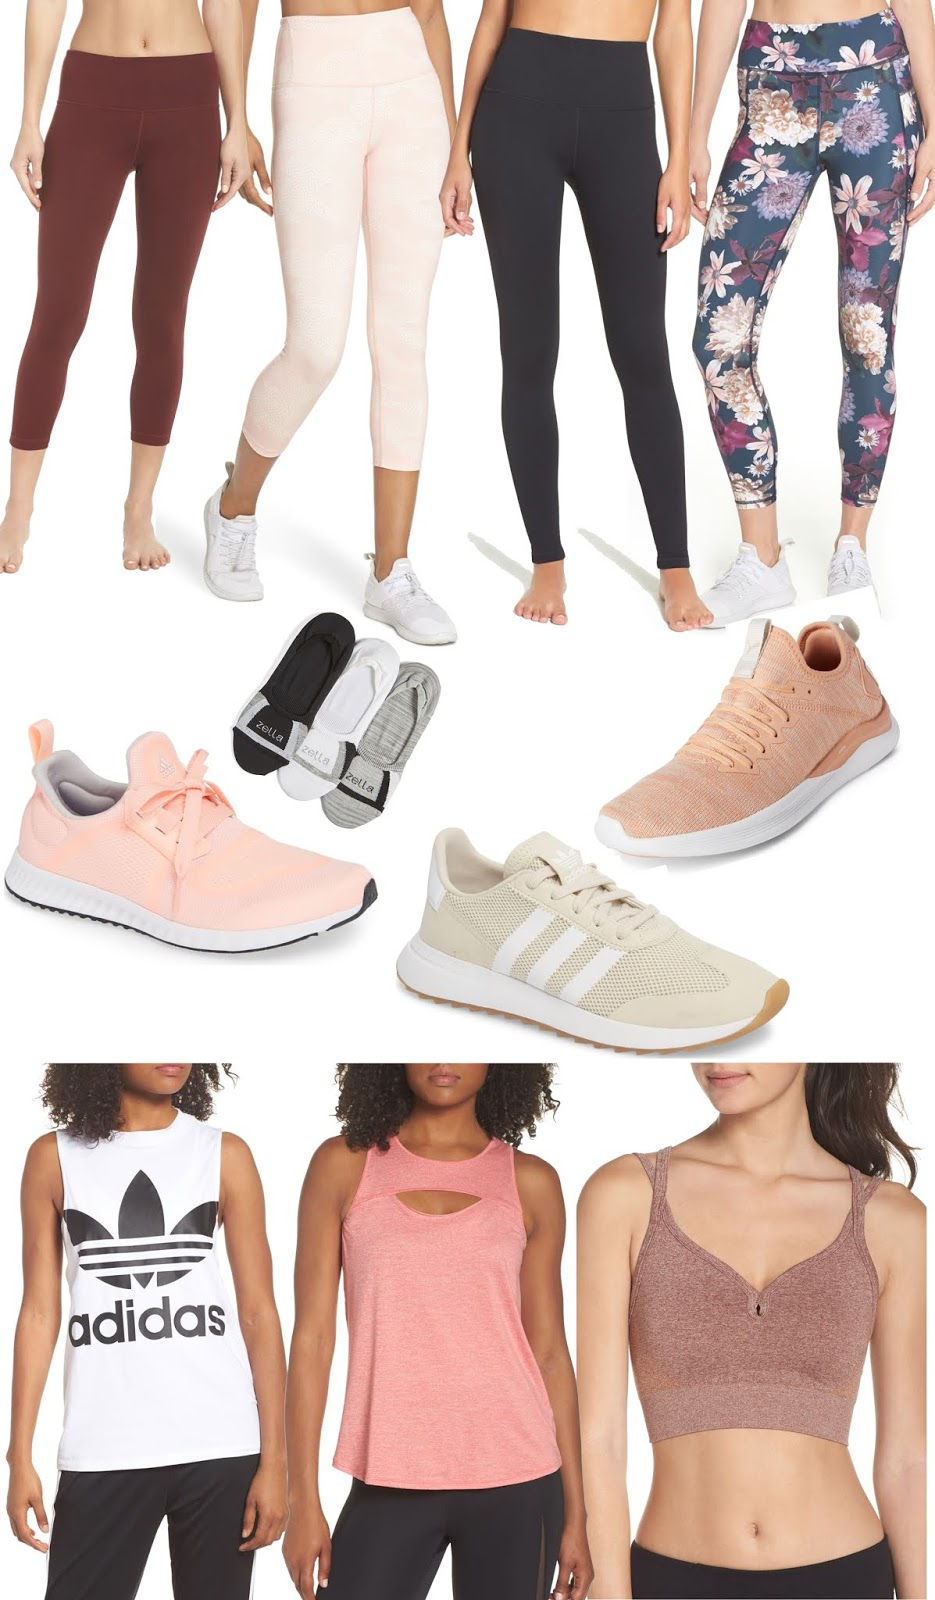 2018 Nordstrom Anniversary Sale: Activewear - Something Delightful Blog